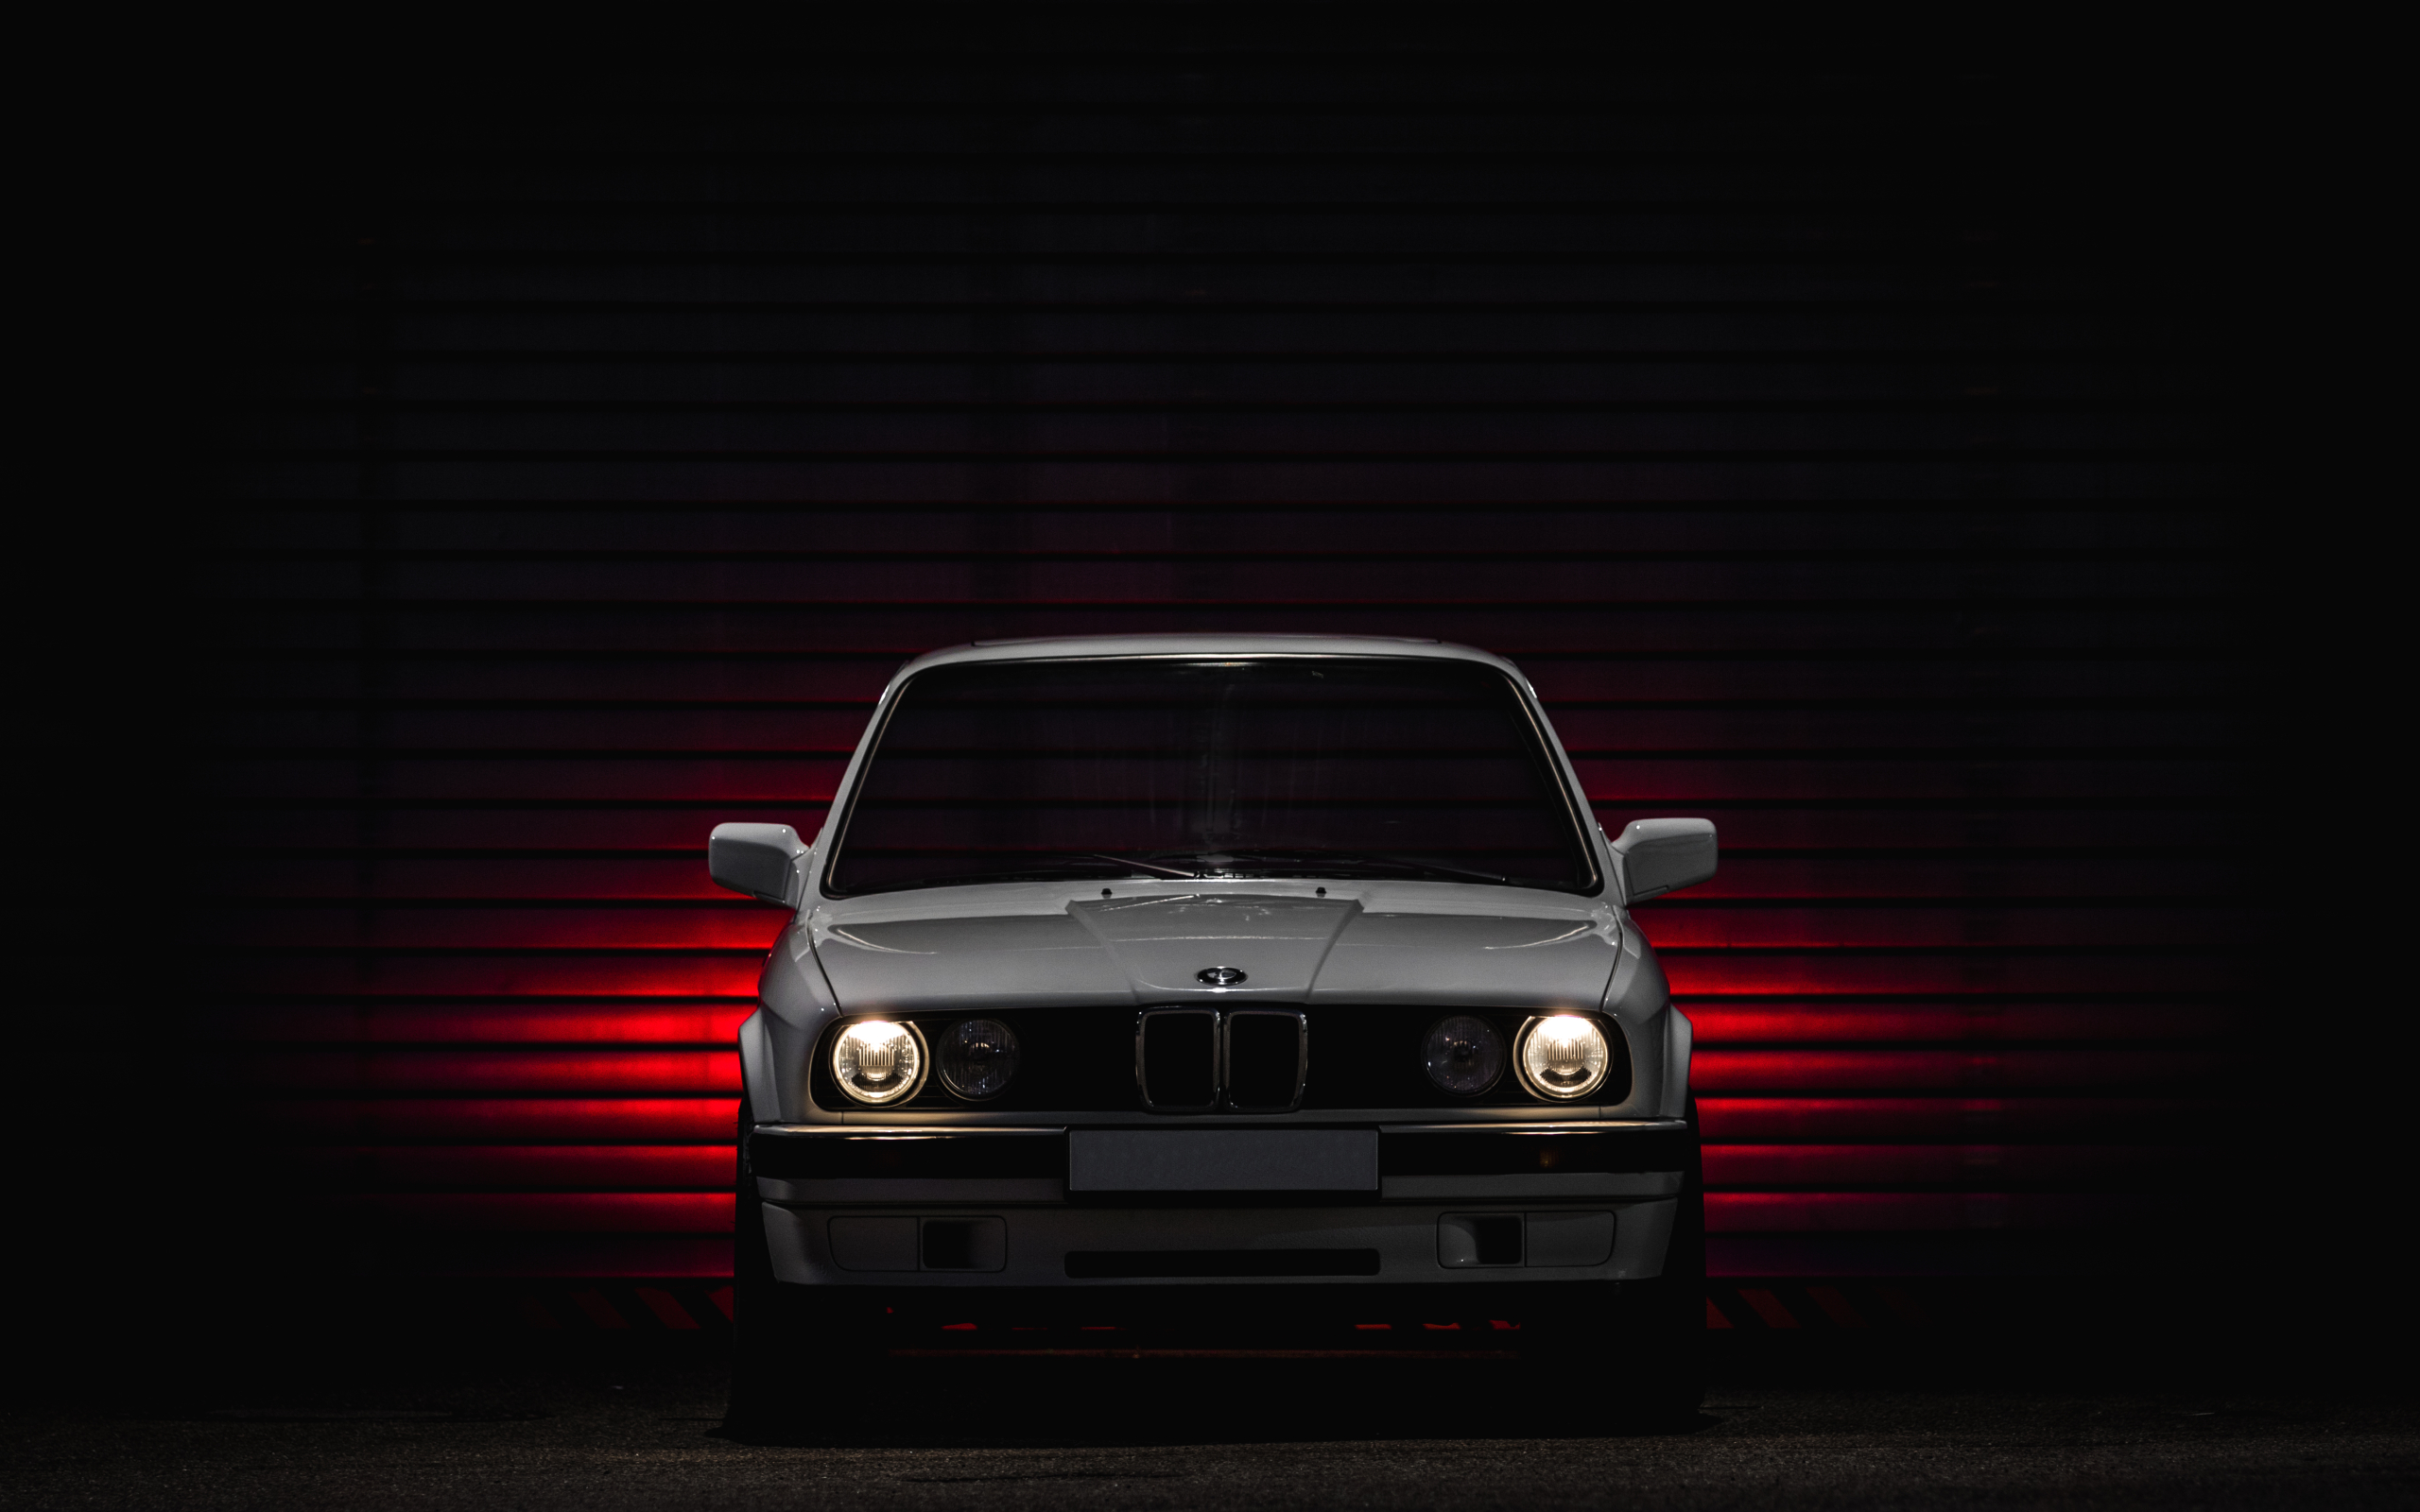 Bmw E30 Car Hd 4k Wallpaper